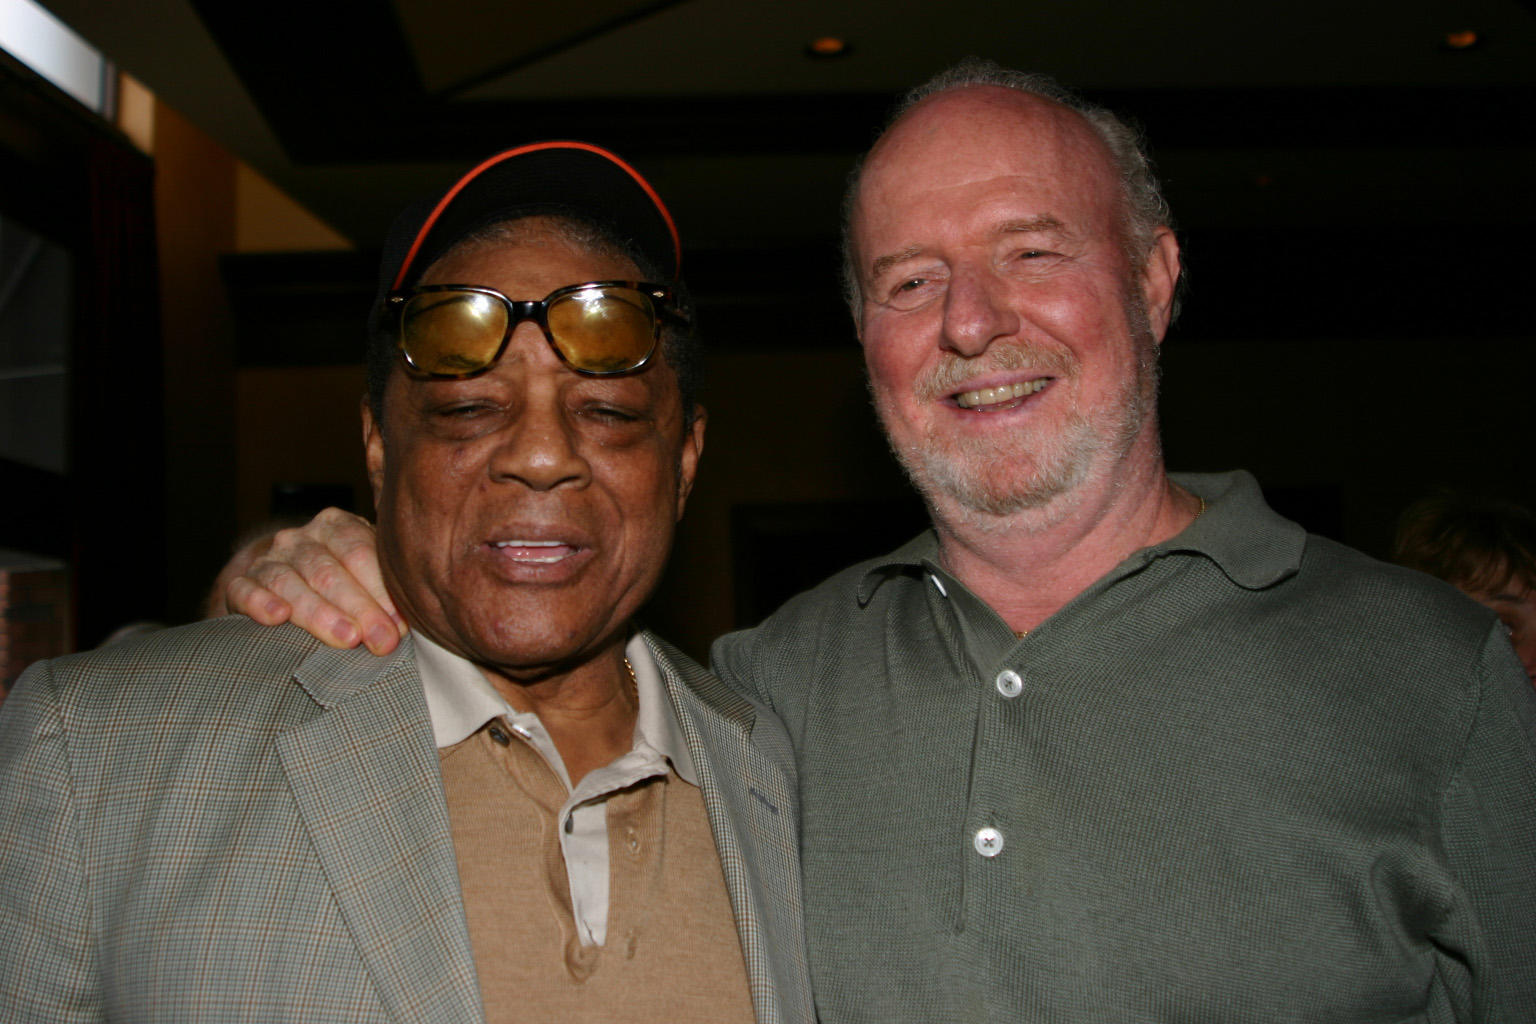 Terry Cashman with Willie Mays in San Francisco in 2004. Cashman was there to perform The Catch, to commemorate the 50th Anniversary of Willie's famous over-the-shoulder catch. BL-204.2011-2 (Laura Fieber-Minogue / National Baseball Hall of Fame Library)